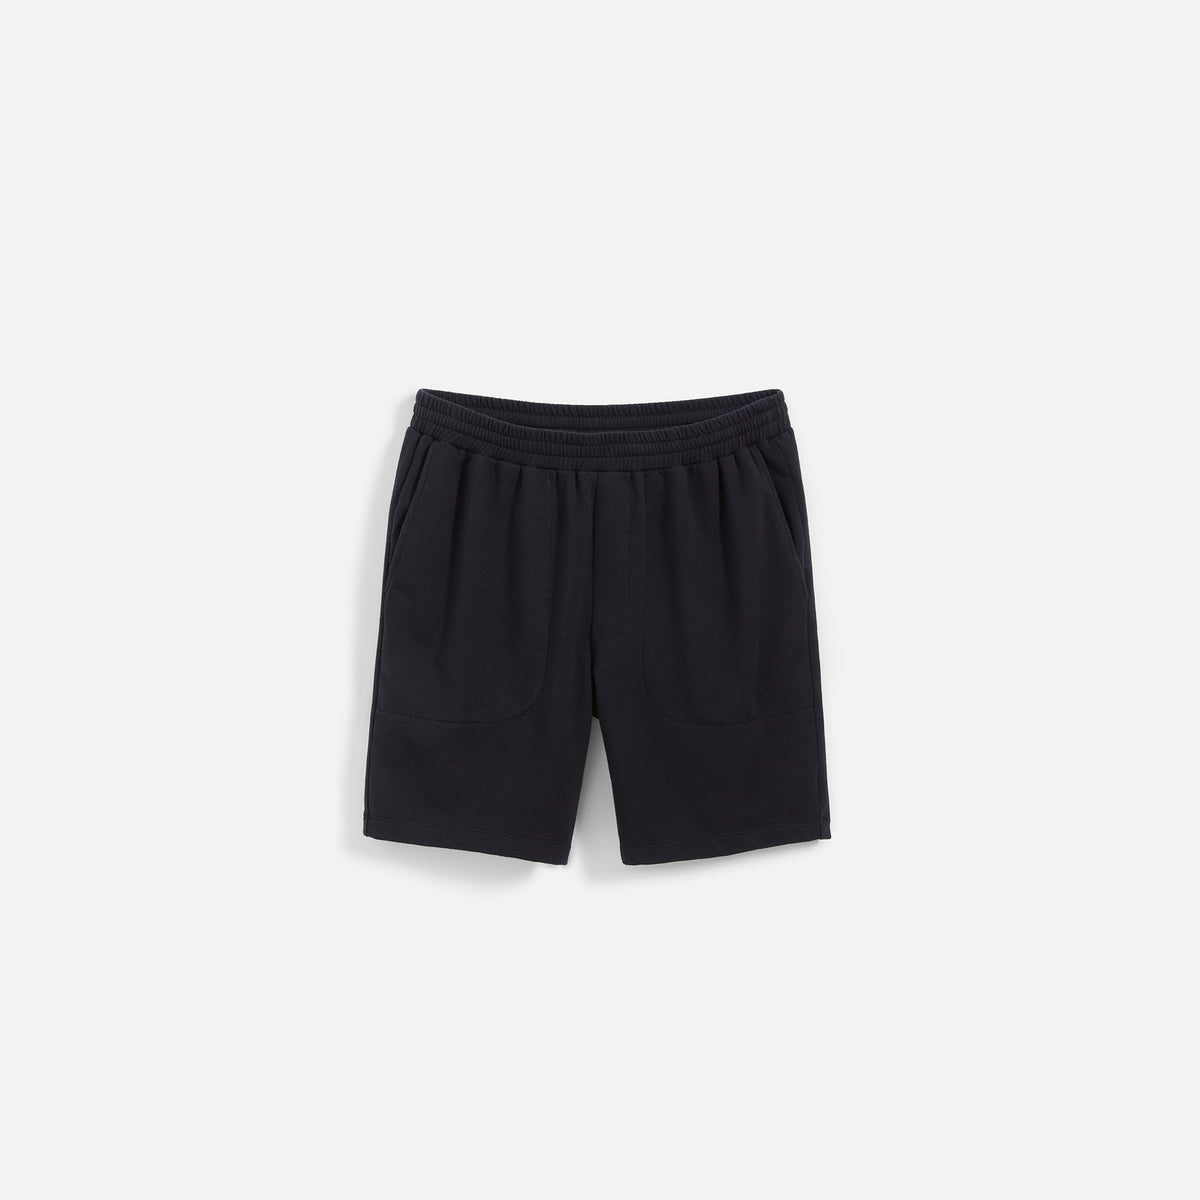 Bowery Short / Black